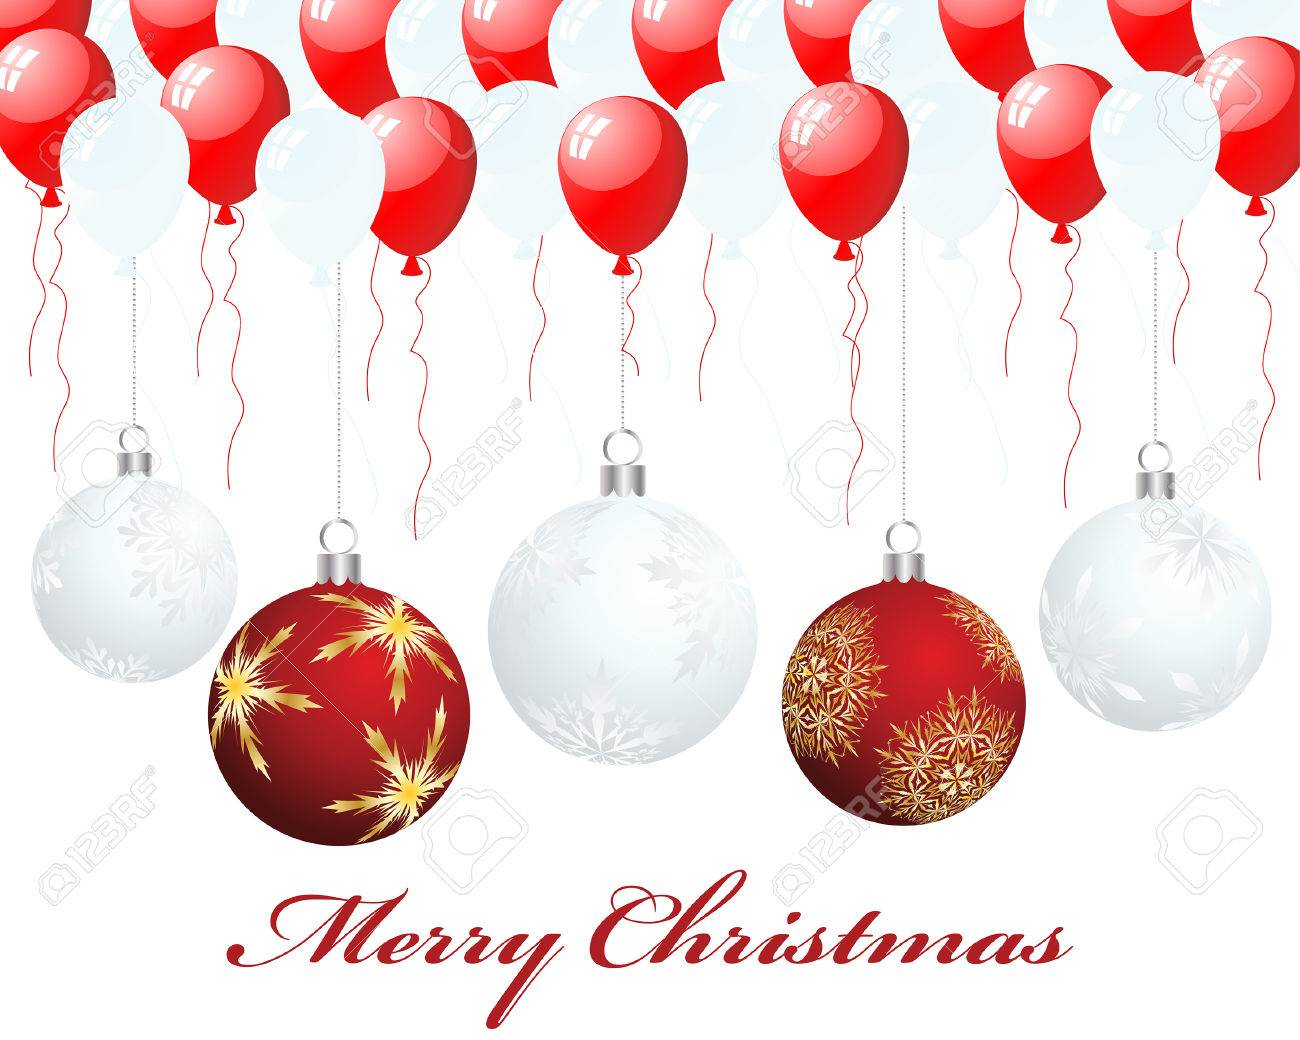 Beautiful vector christmas new year background for design use - Beautiful Vector Christmas New Year Background For Design Use Stock Vector 5868425